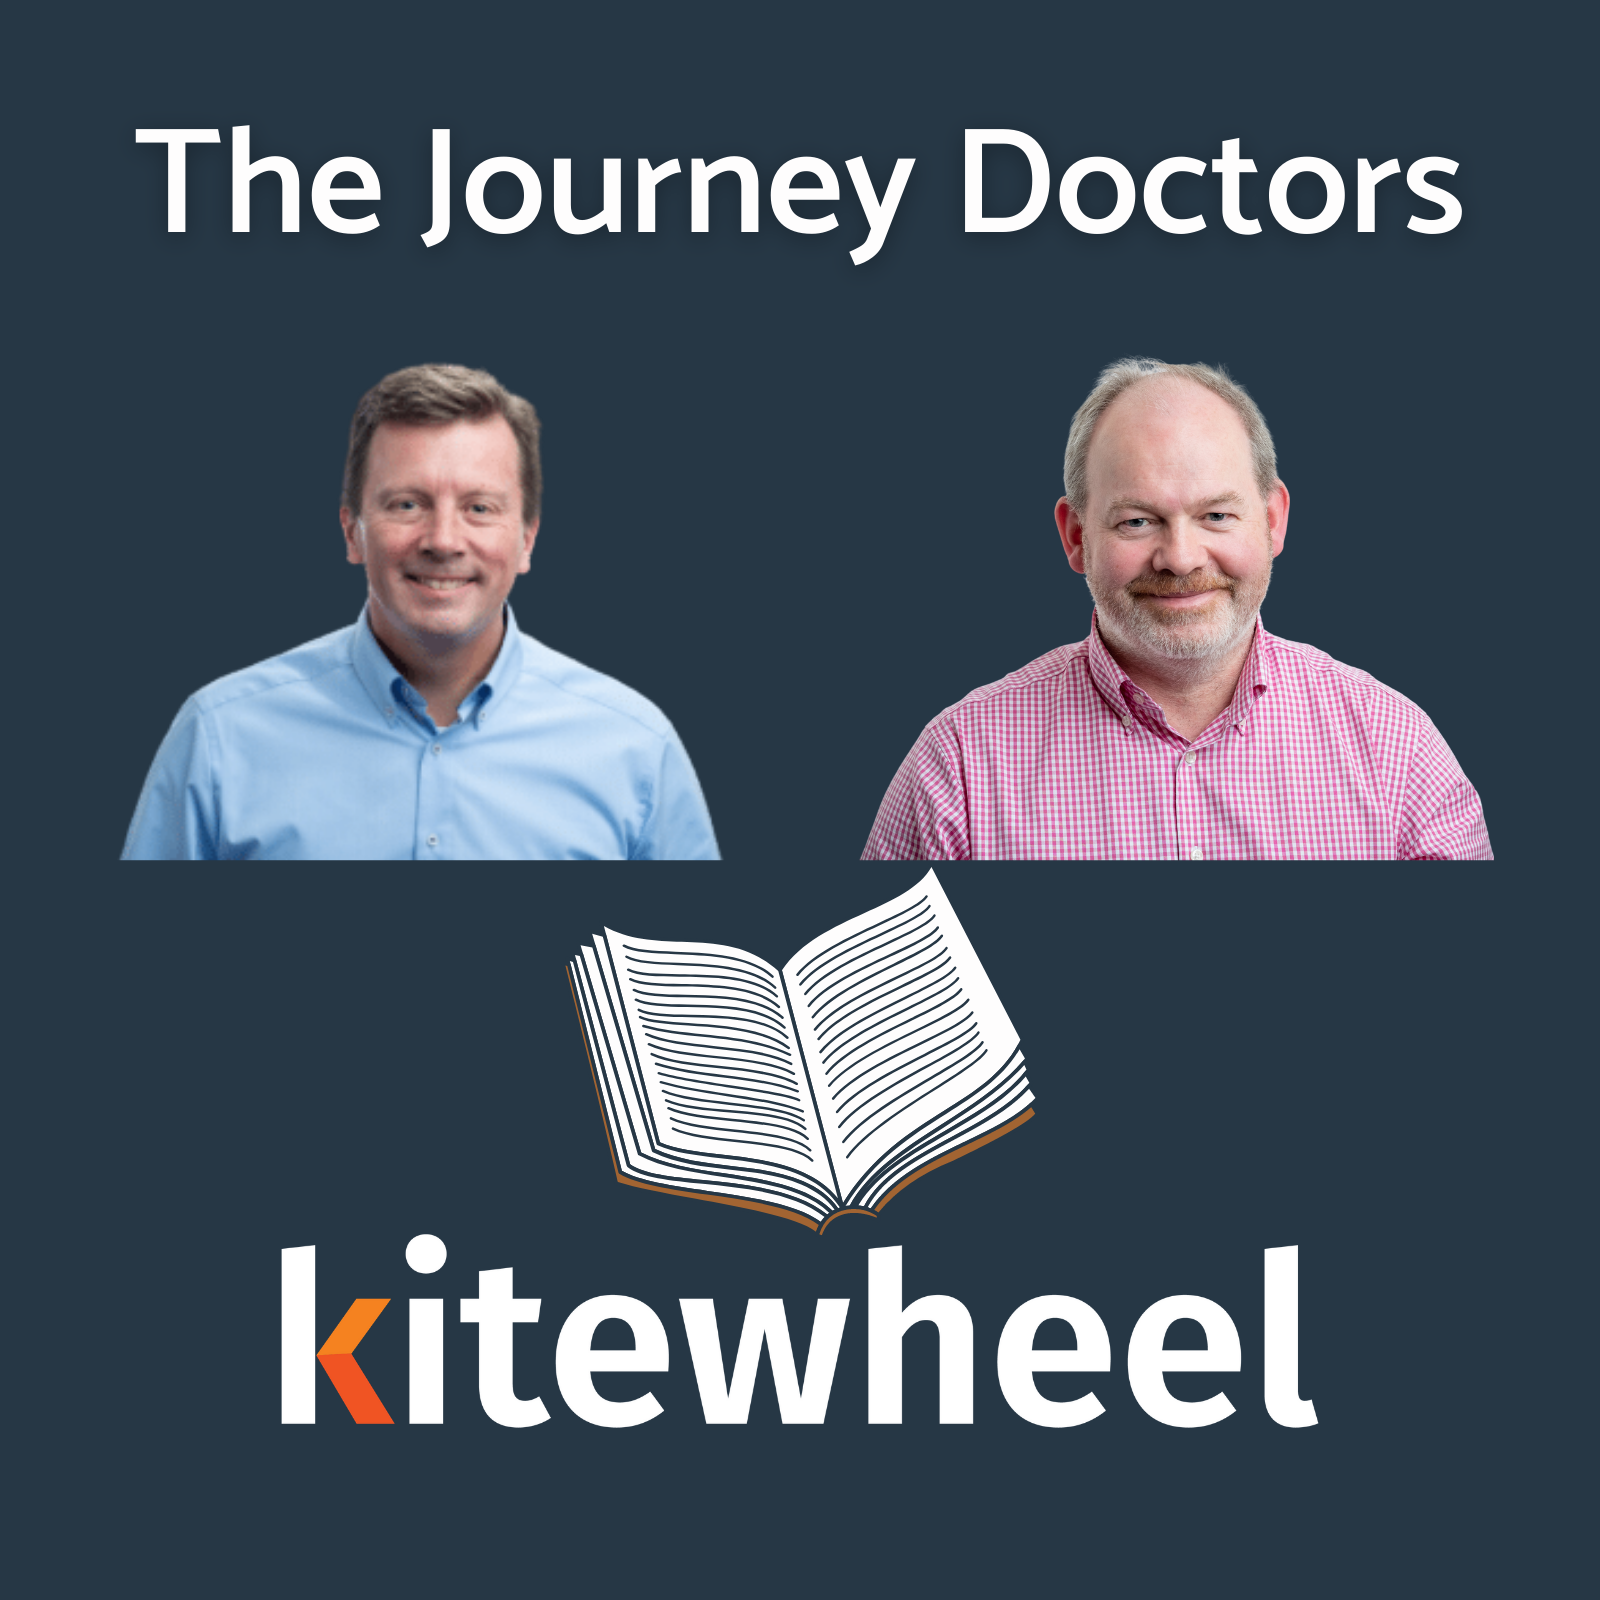 The History of Kitewheel: Why Your Journeys Should Be Channel Agnostic